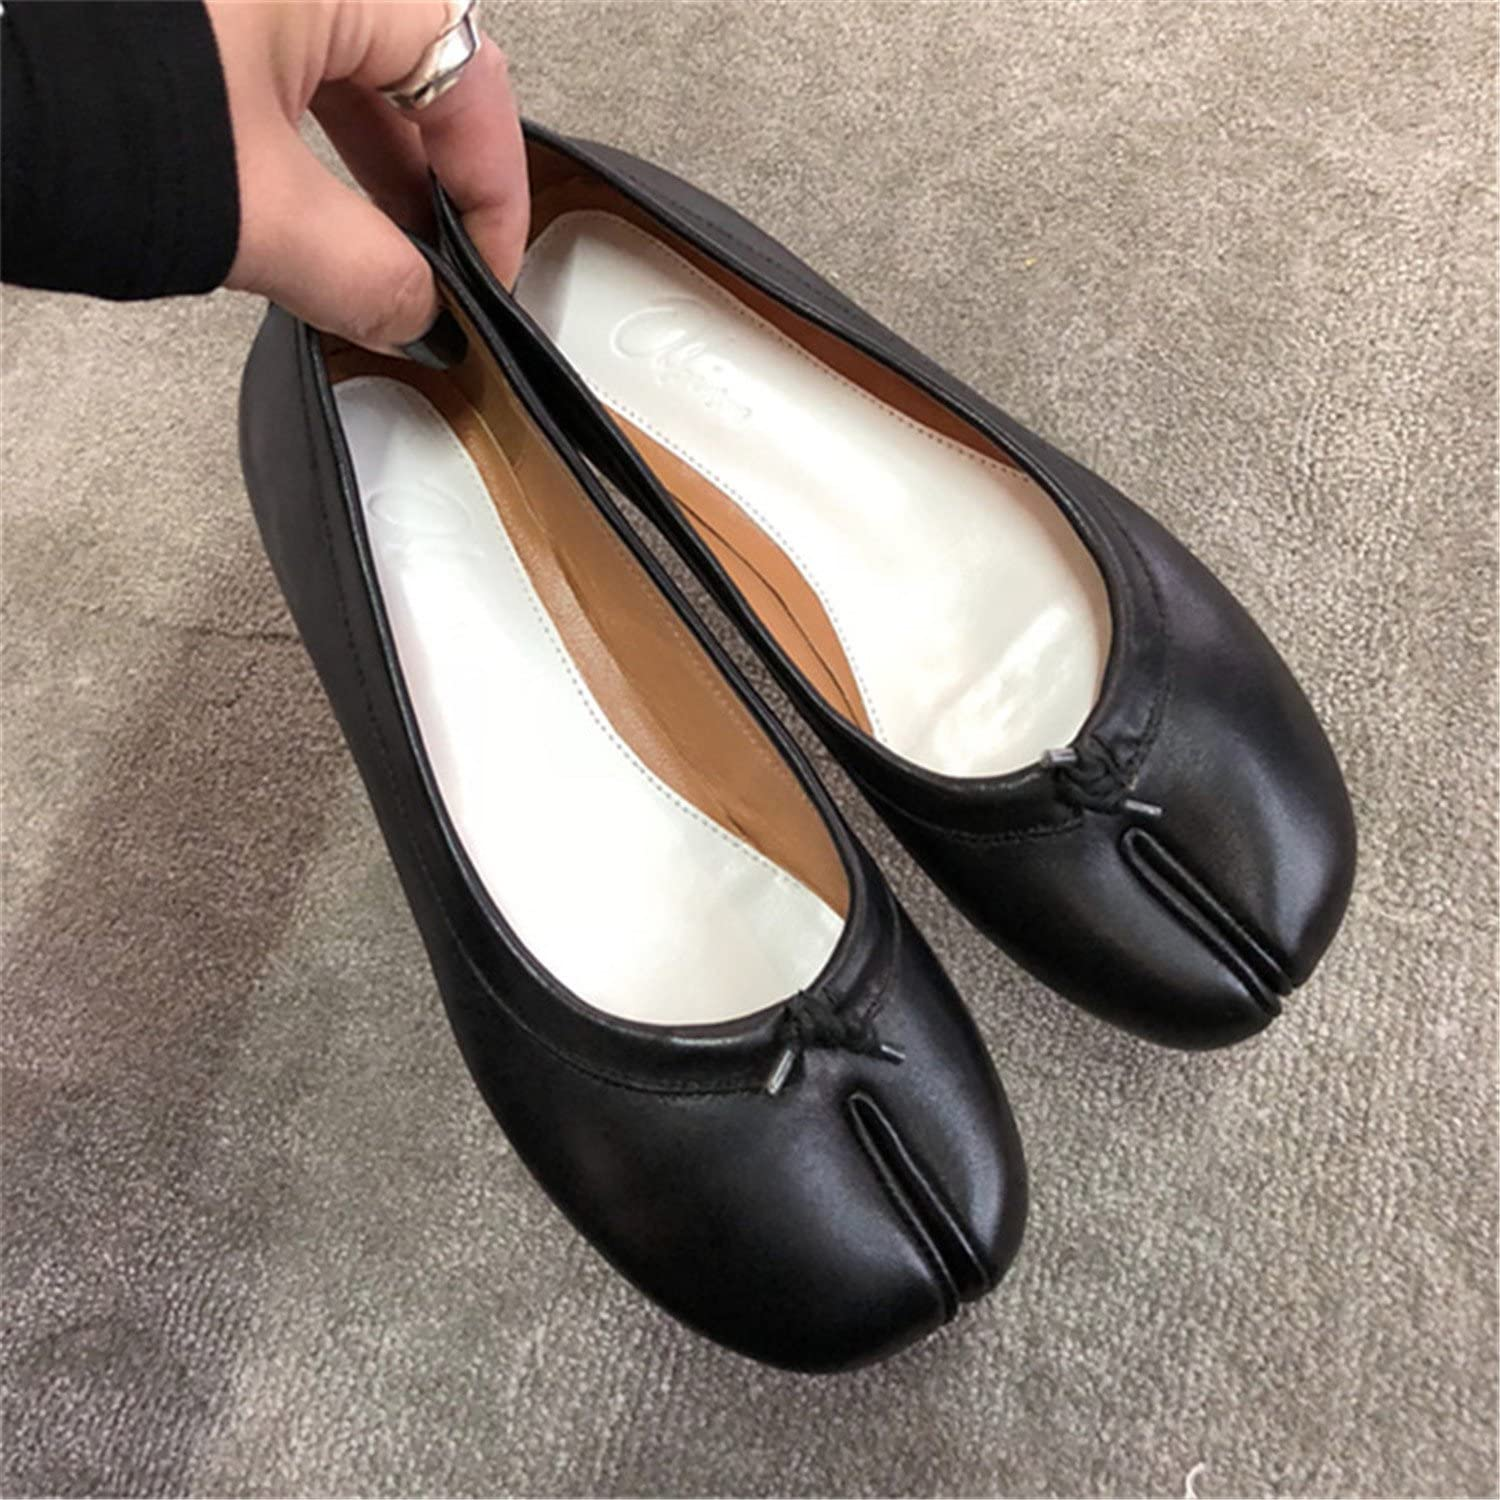 Naomiky Newest Flat shoes Woman Split Toes Apart Runway Casual shoes for Women shoes shoes women